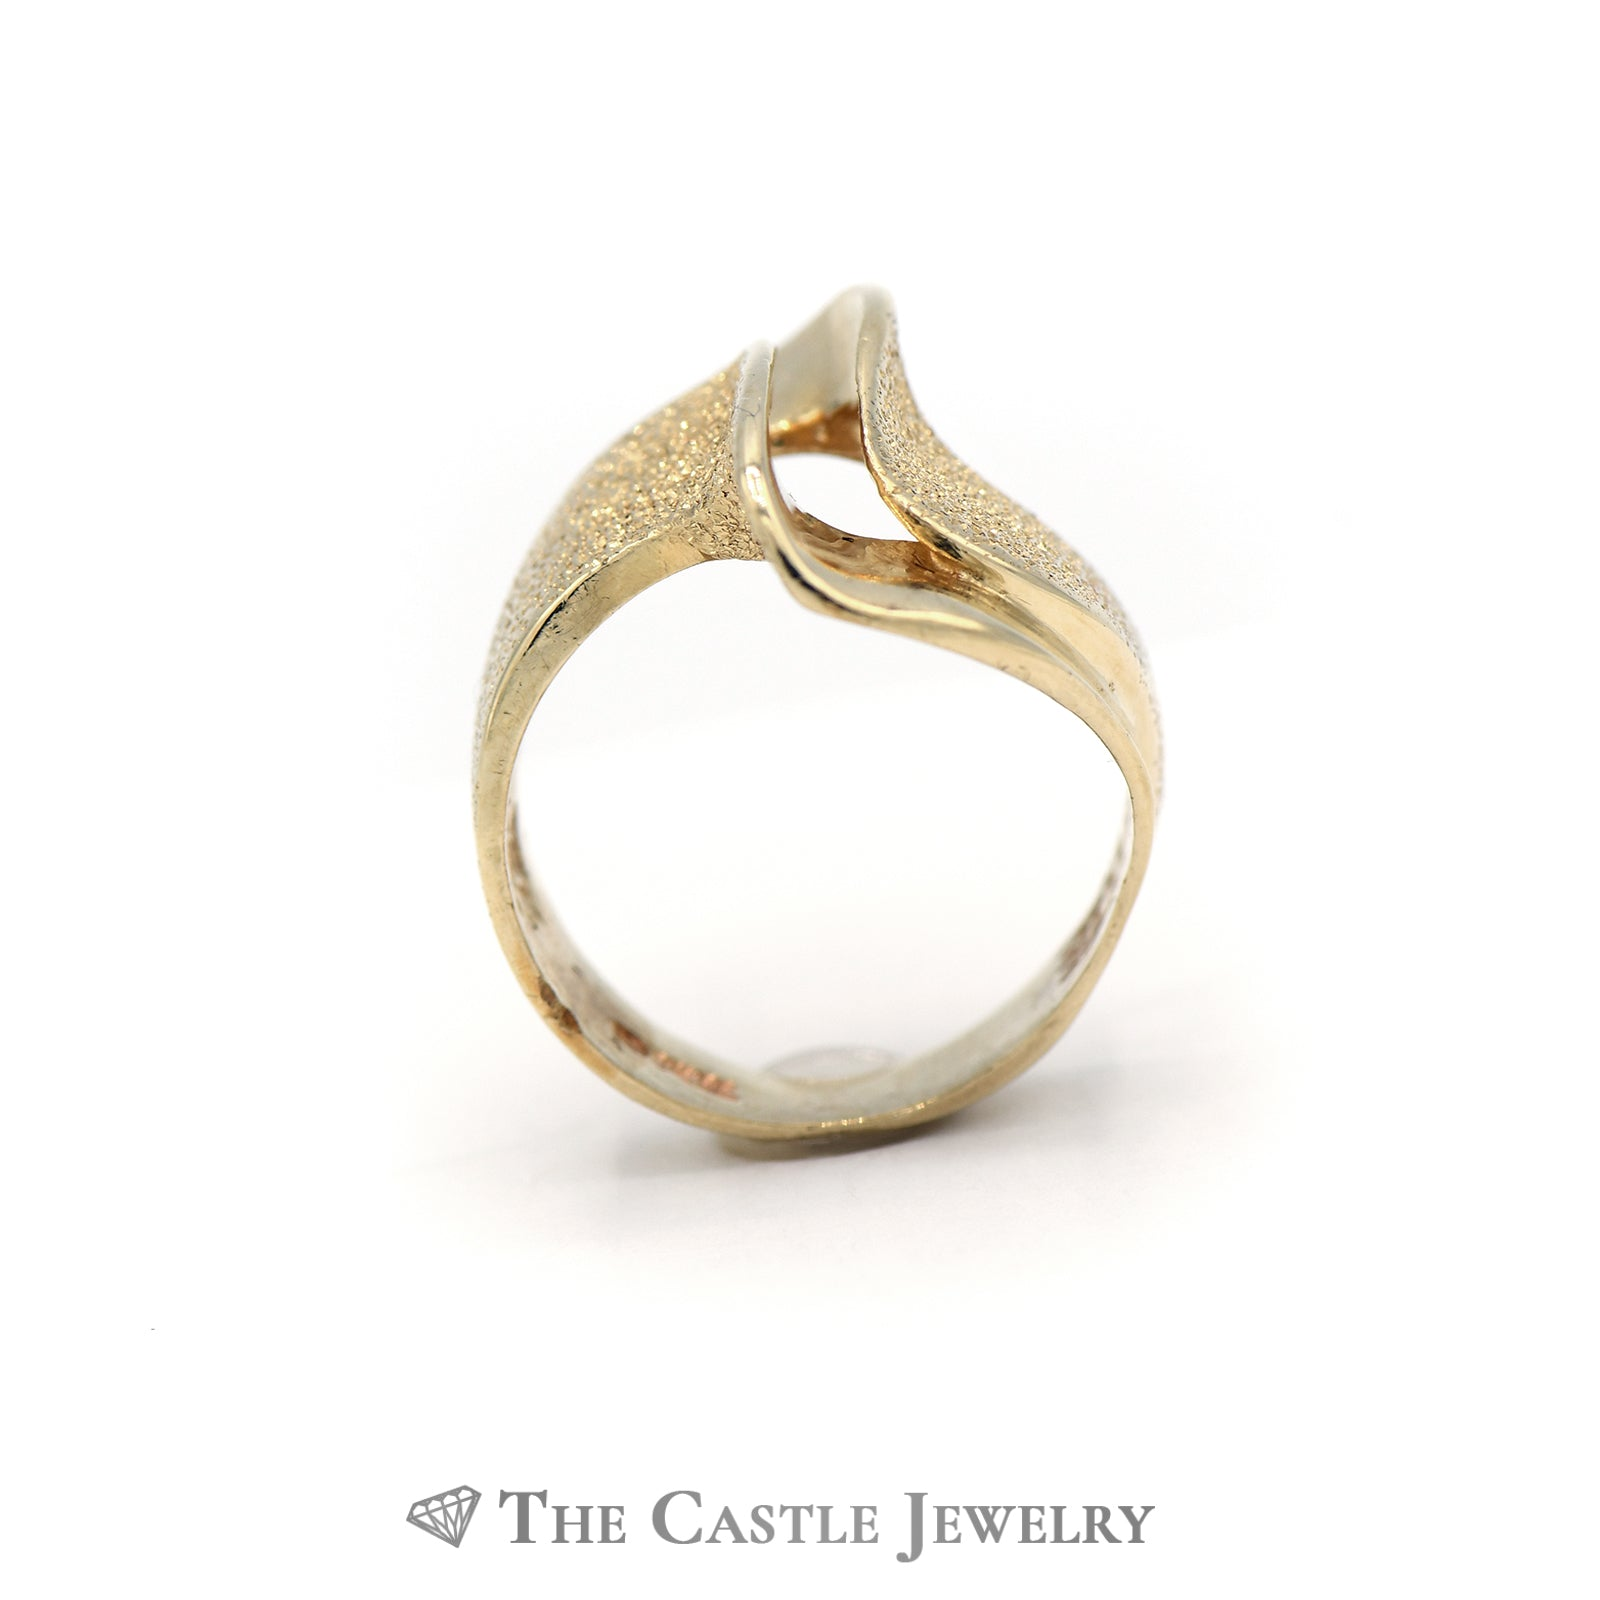 Lovely Split Wave Design Solid Gold Ring in 14K Yellow Gold-1